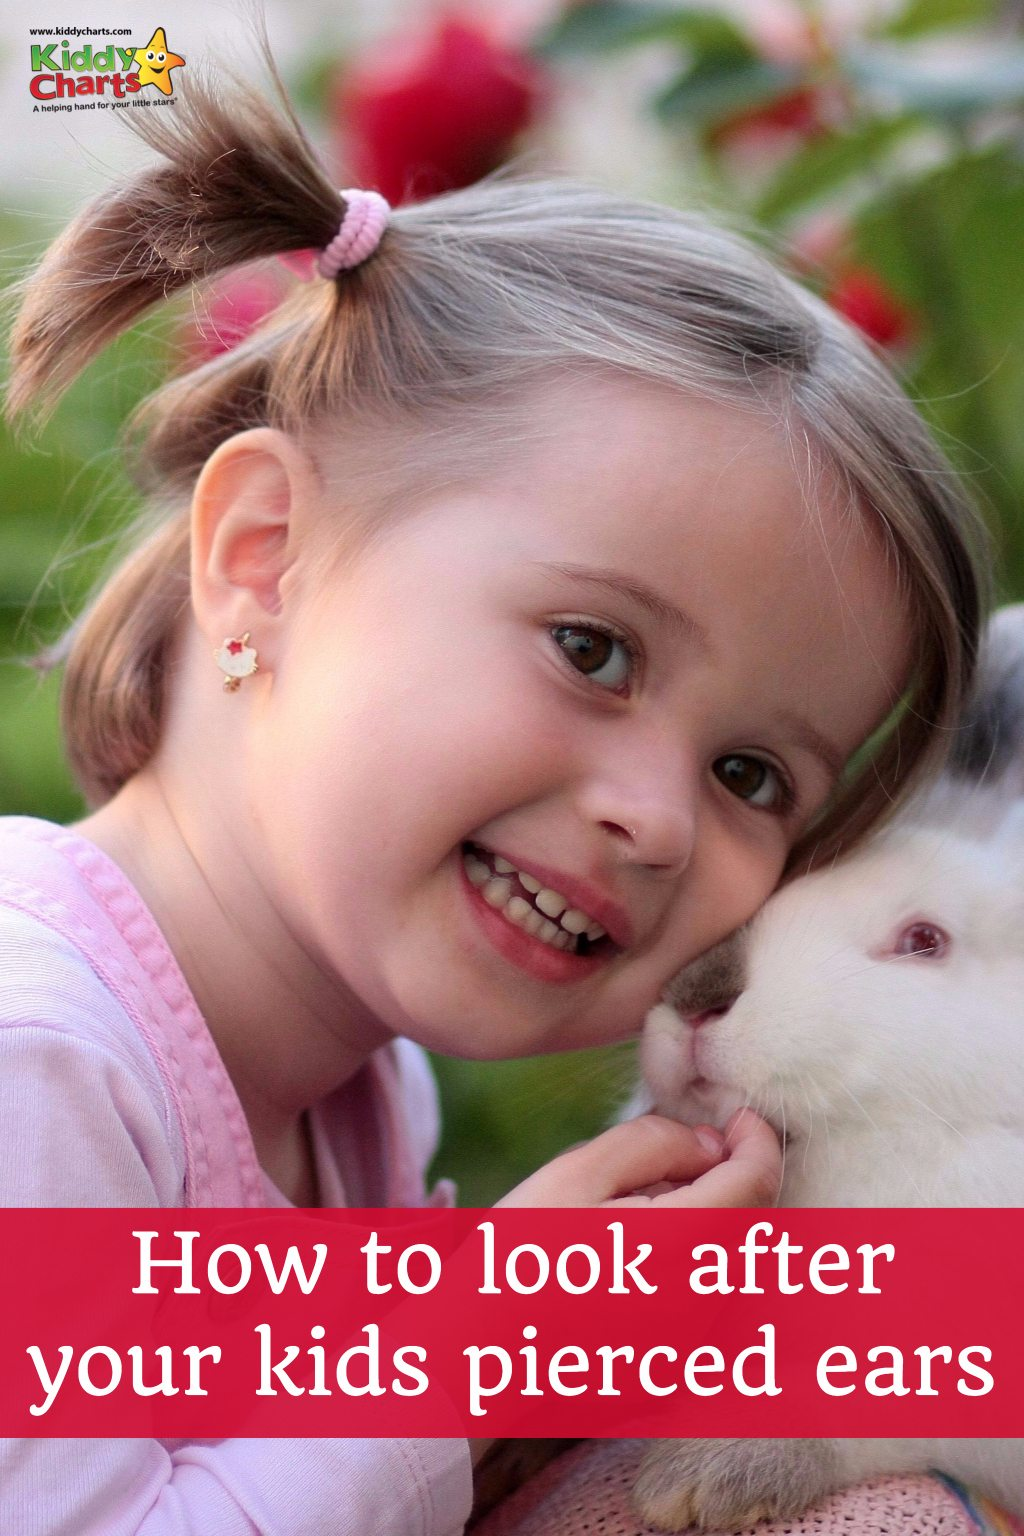 Ear piercing aftercare with kids is really important. Why don't you check out our great tips?